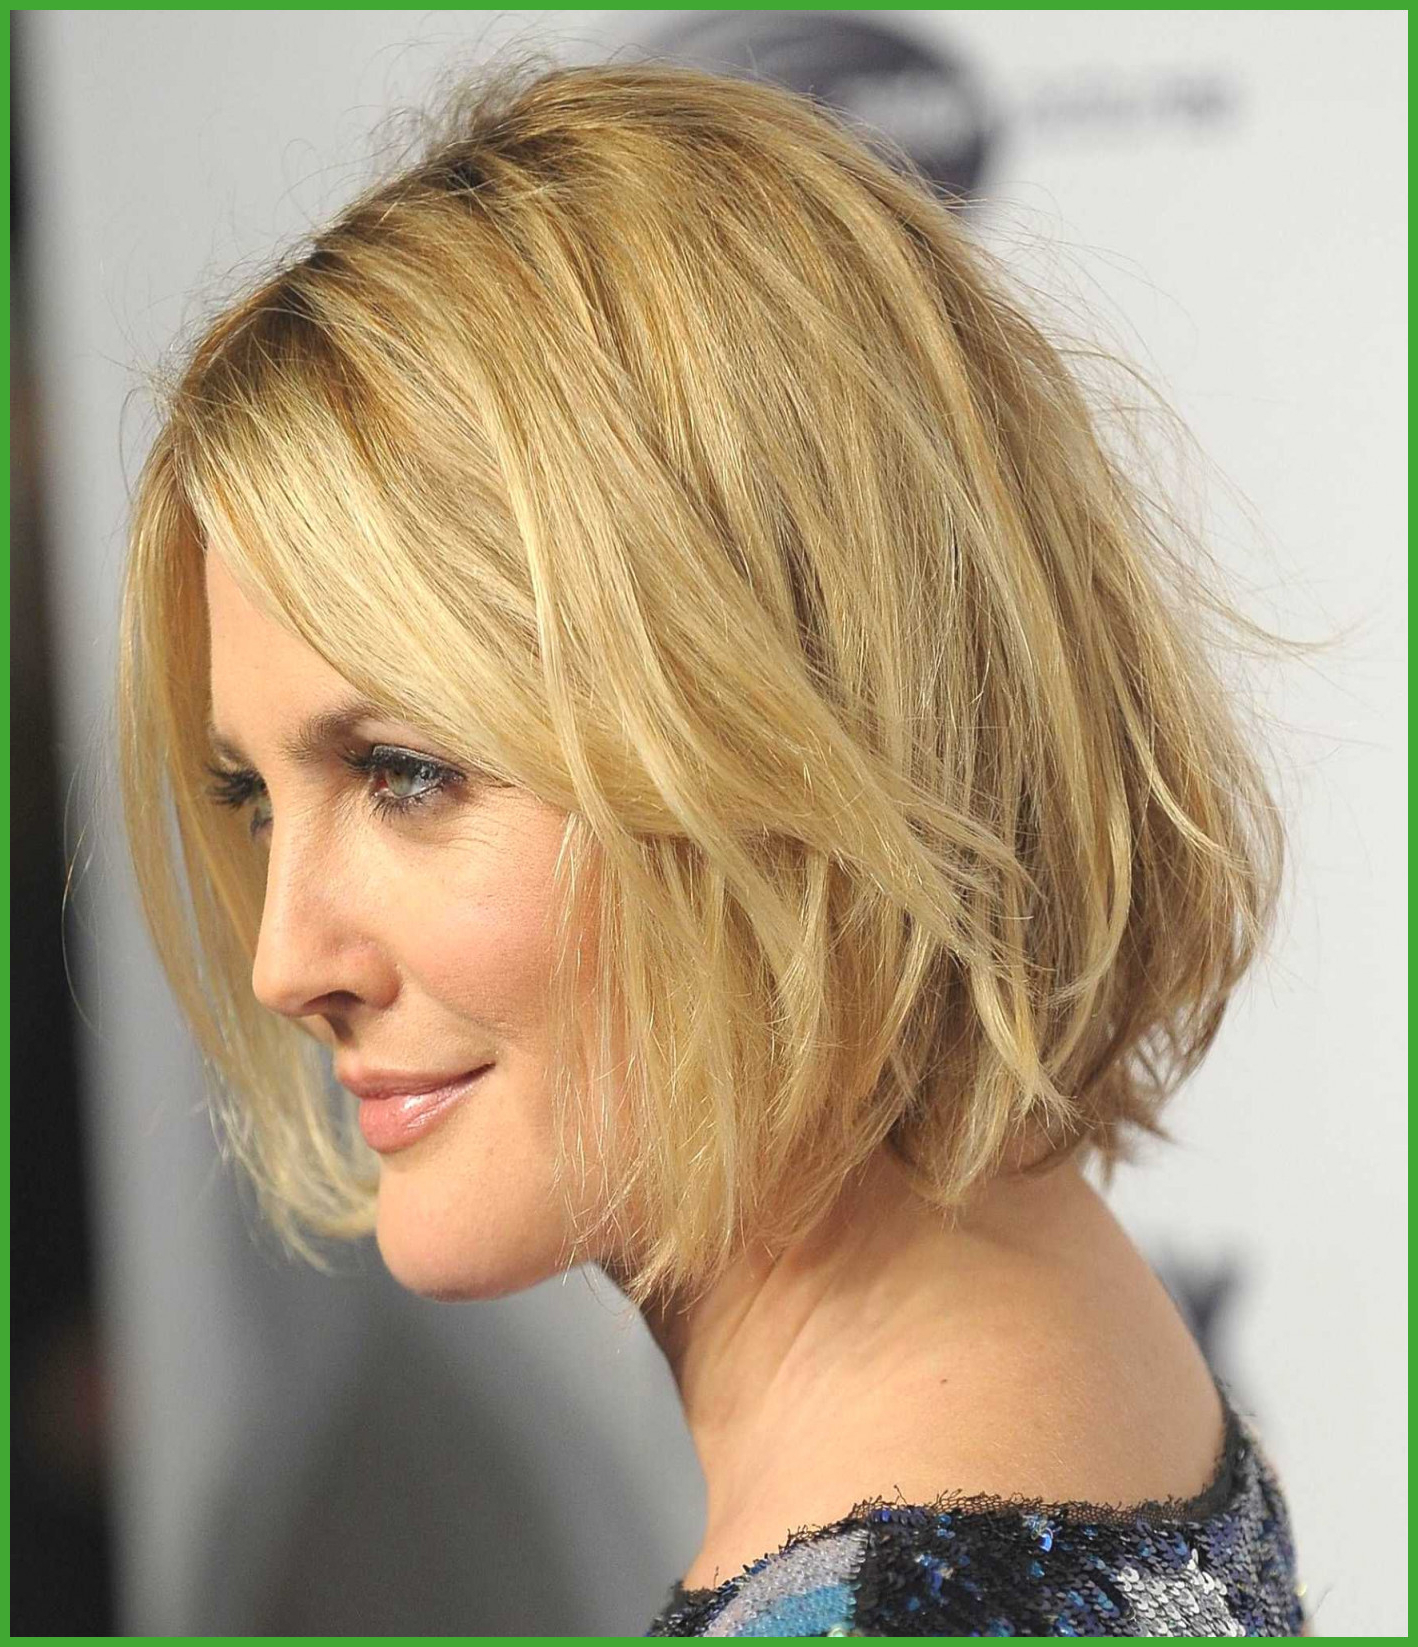 Drew Barrymore Short Hairstyles Awesome 20 Awesome Layered Haircut pertaining to Drew Barrymore Short Haircuts